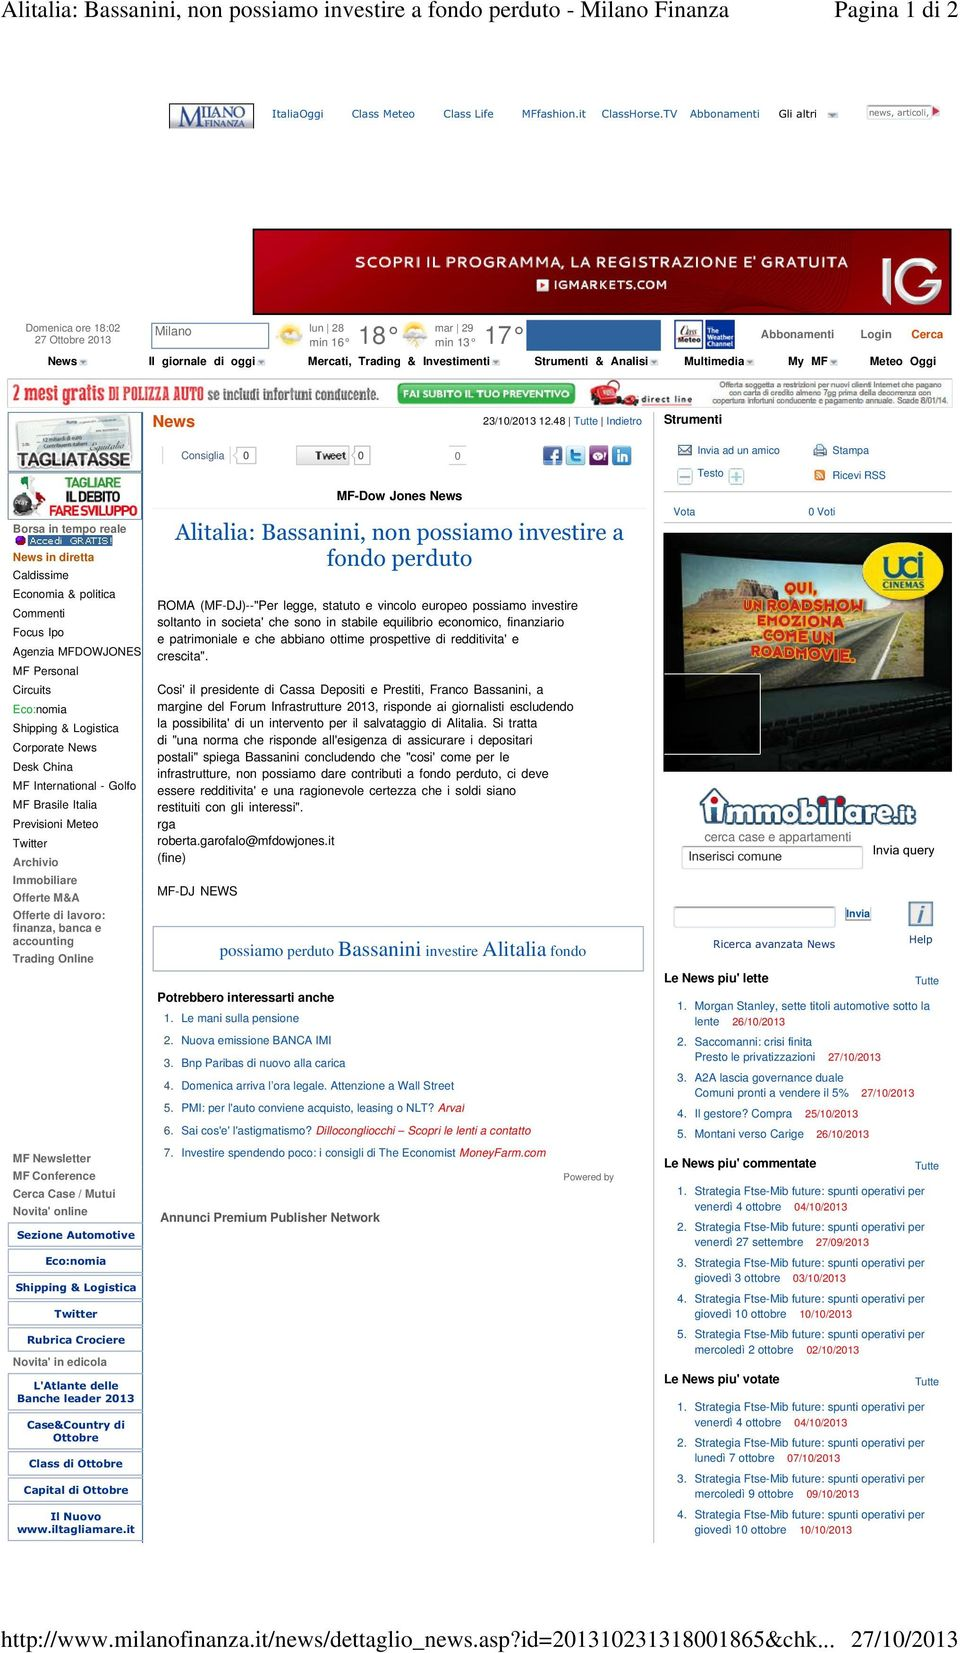 Analisi Multimedia My MF Meteo Oggi News 23/10/2013 12.